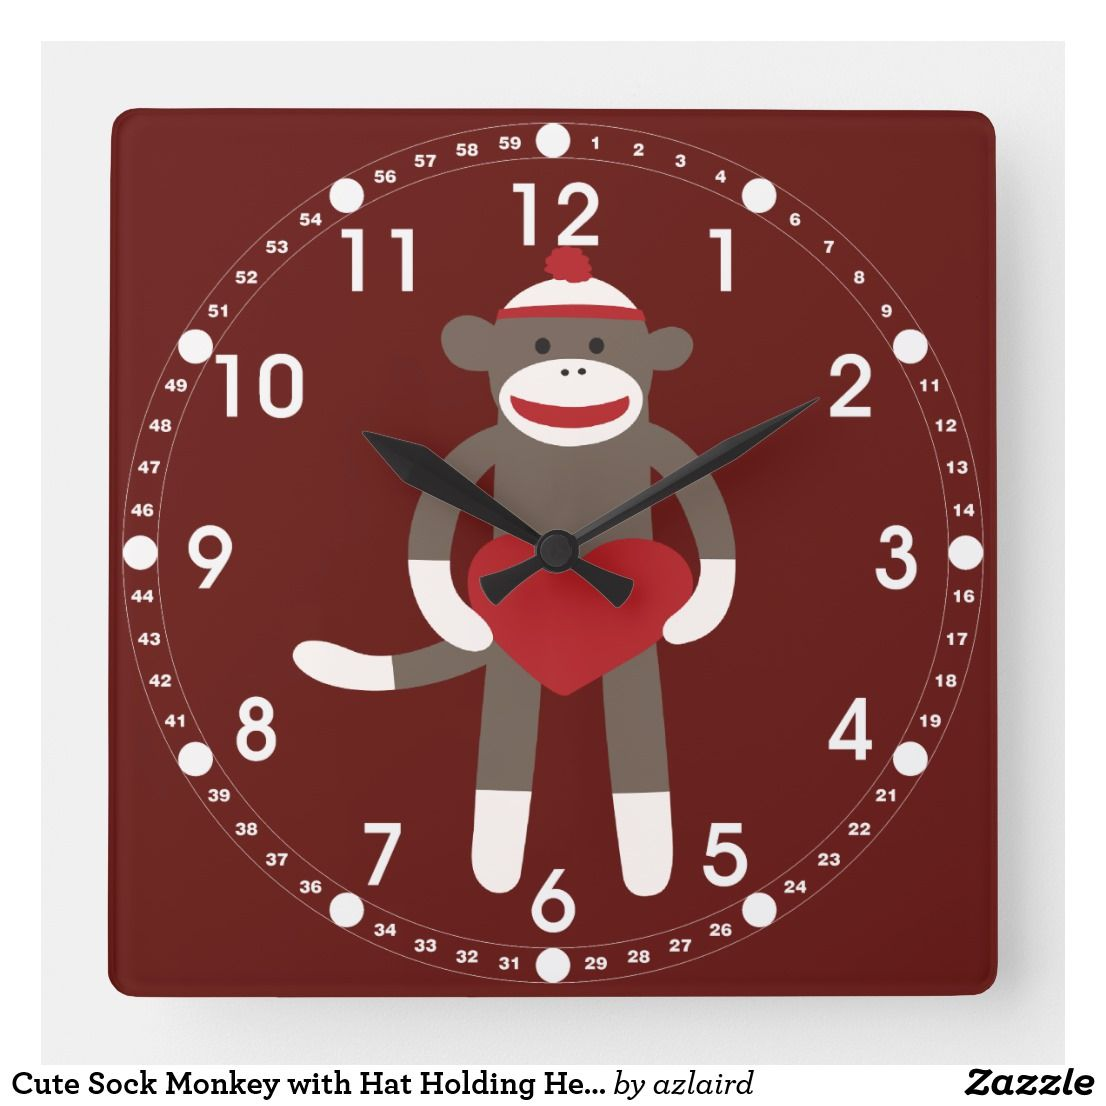 Cute Sock Monkey With Hat Holding Heart Square Wall Clock Zazzle Com Square Wall Clock Wall Clock Cute Socks